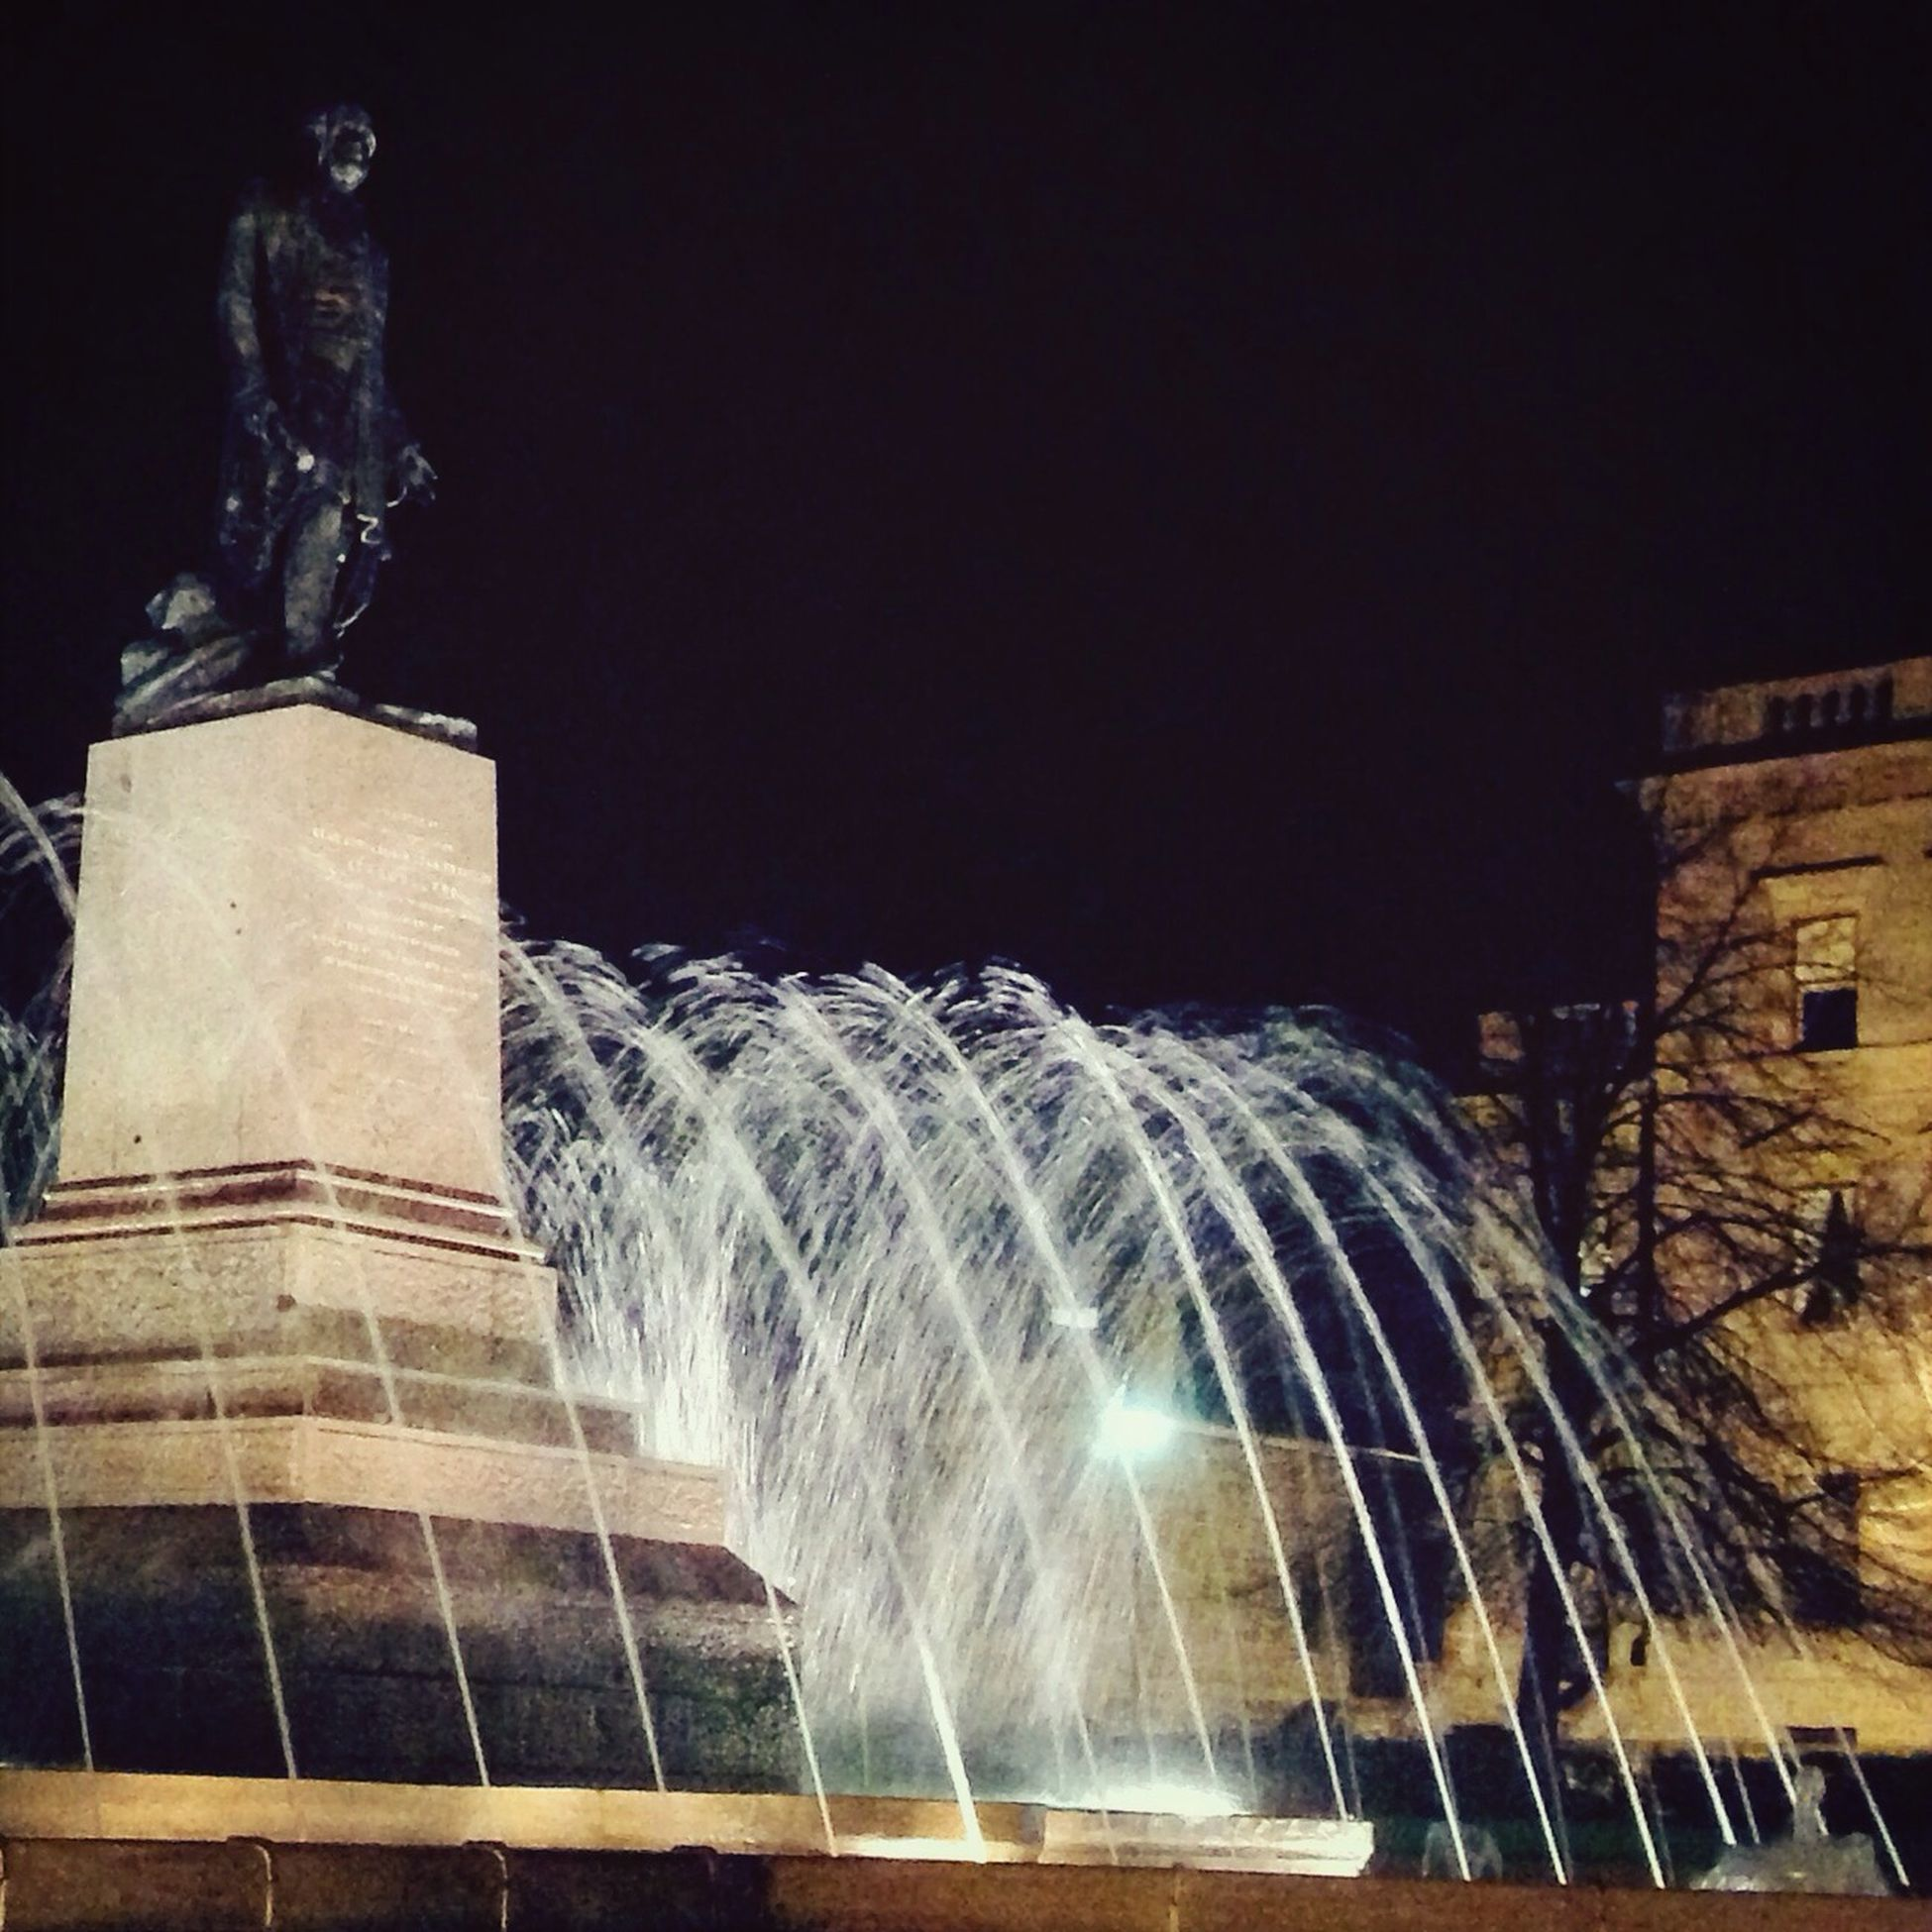 Franklin Square Fountain at Midnight Hobart Tasmania Fountain Iphonephotography